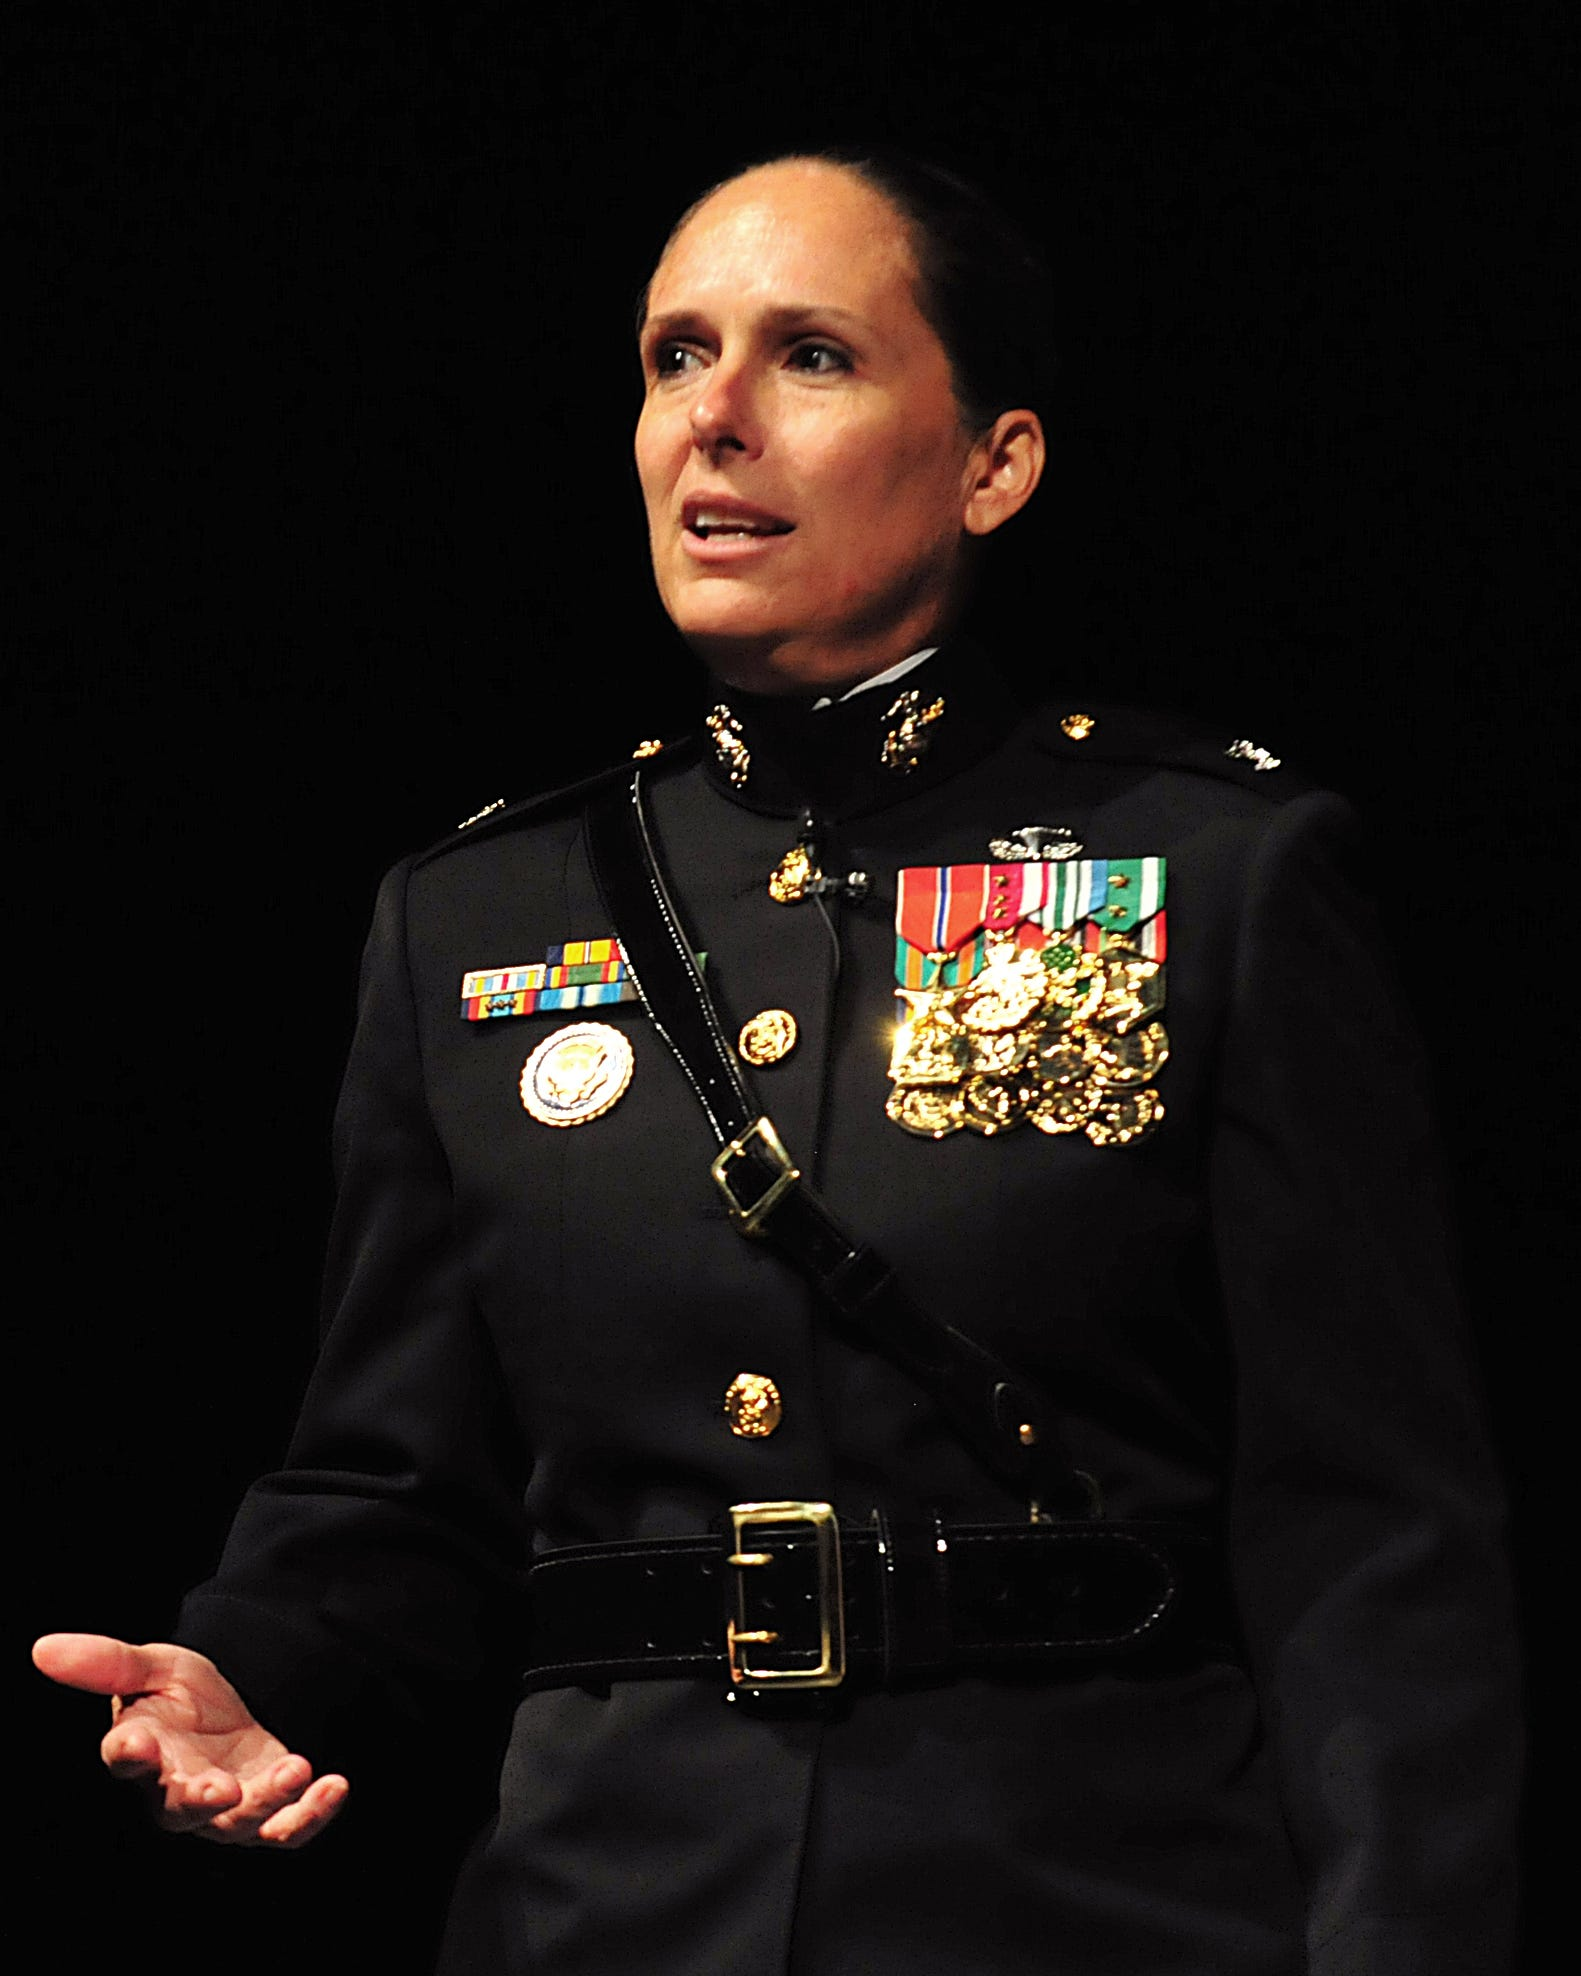 Navy To Begin Testing New Female Dress Uniforms At Naval